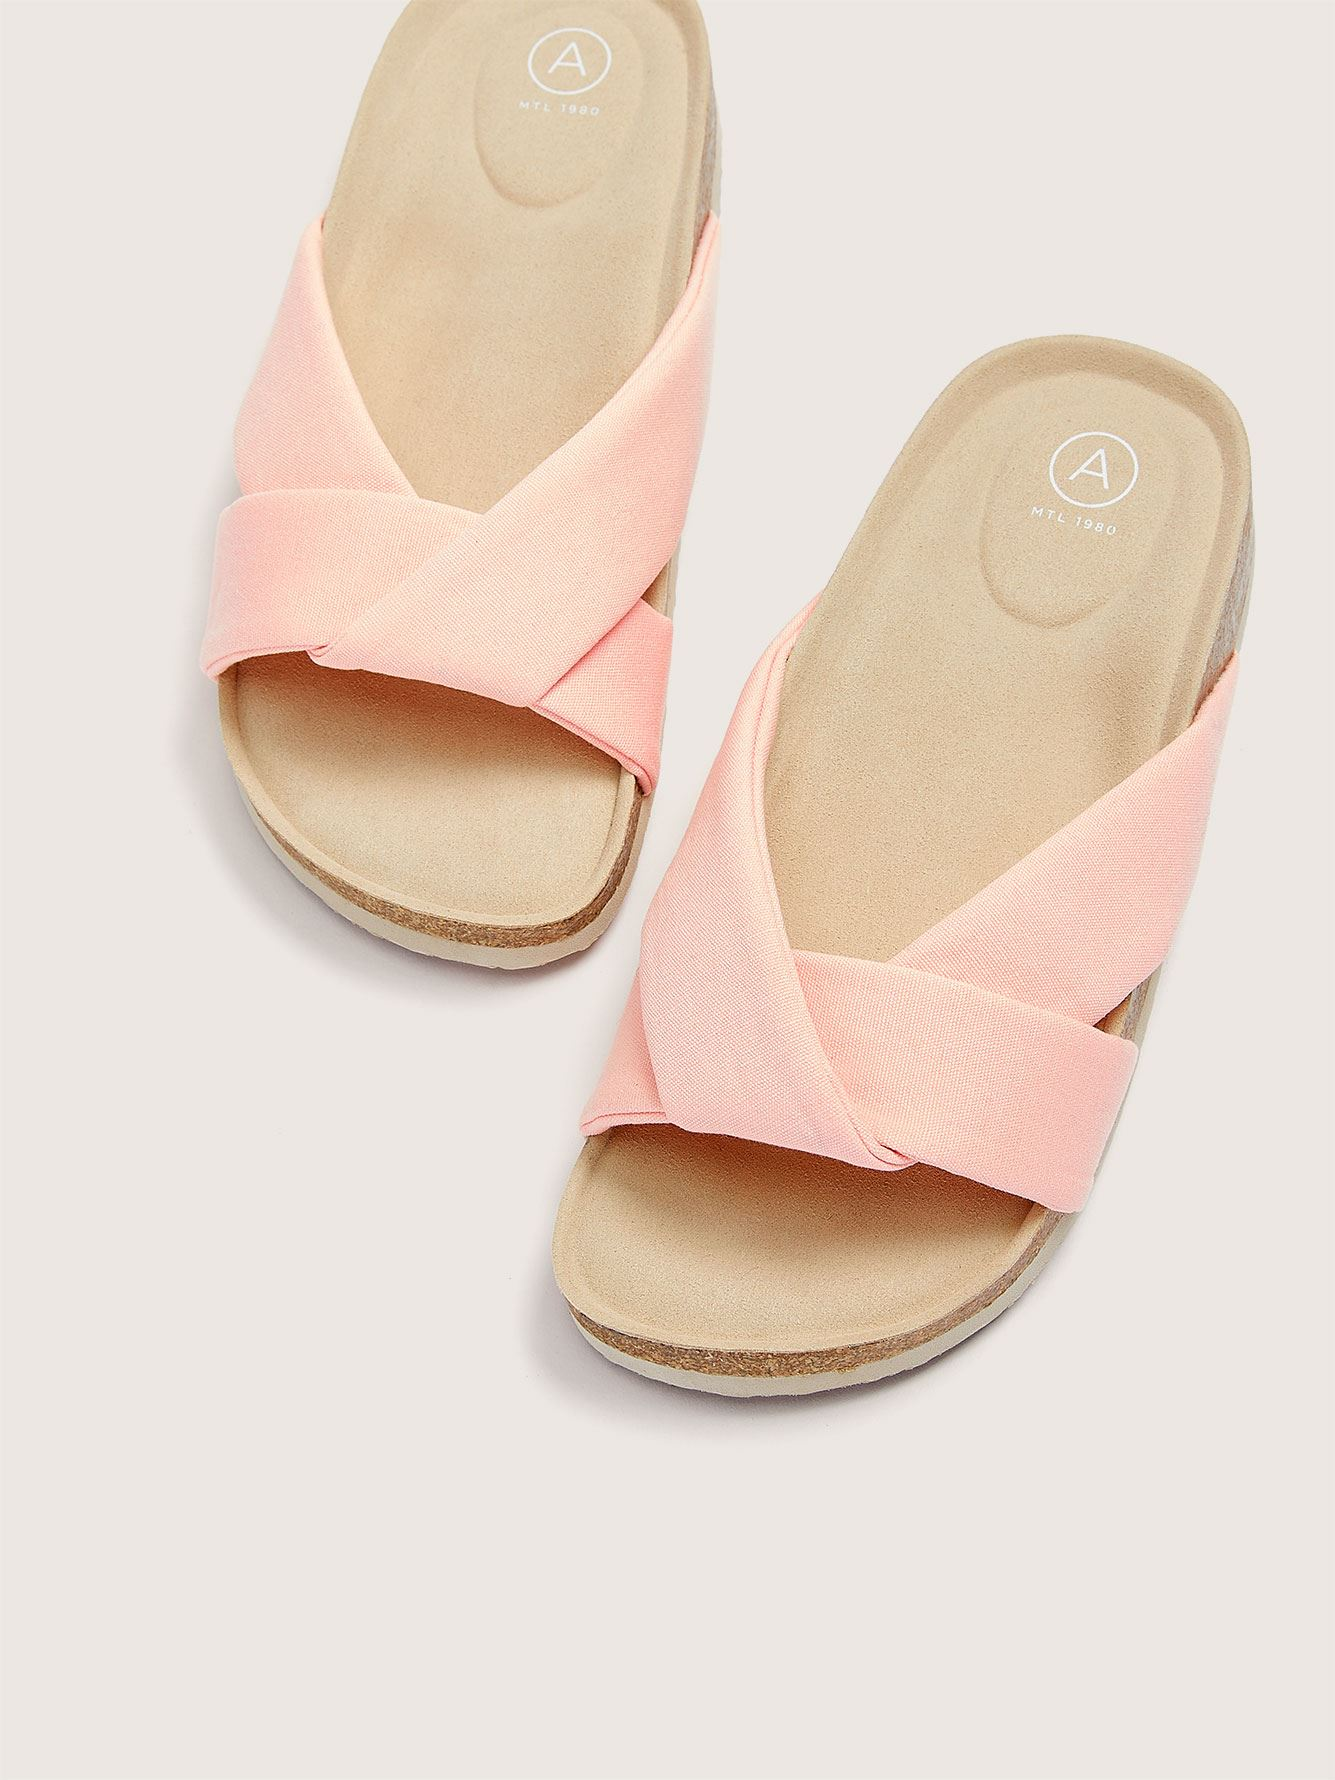 Wide Cotton Canvas Sandal - Addition Elle